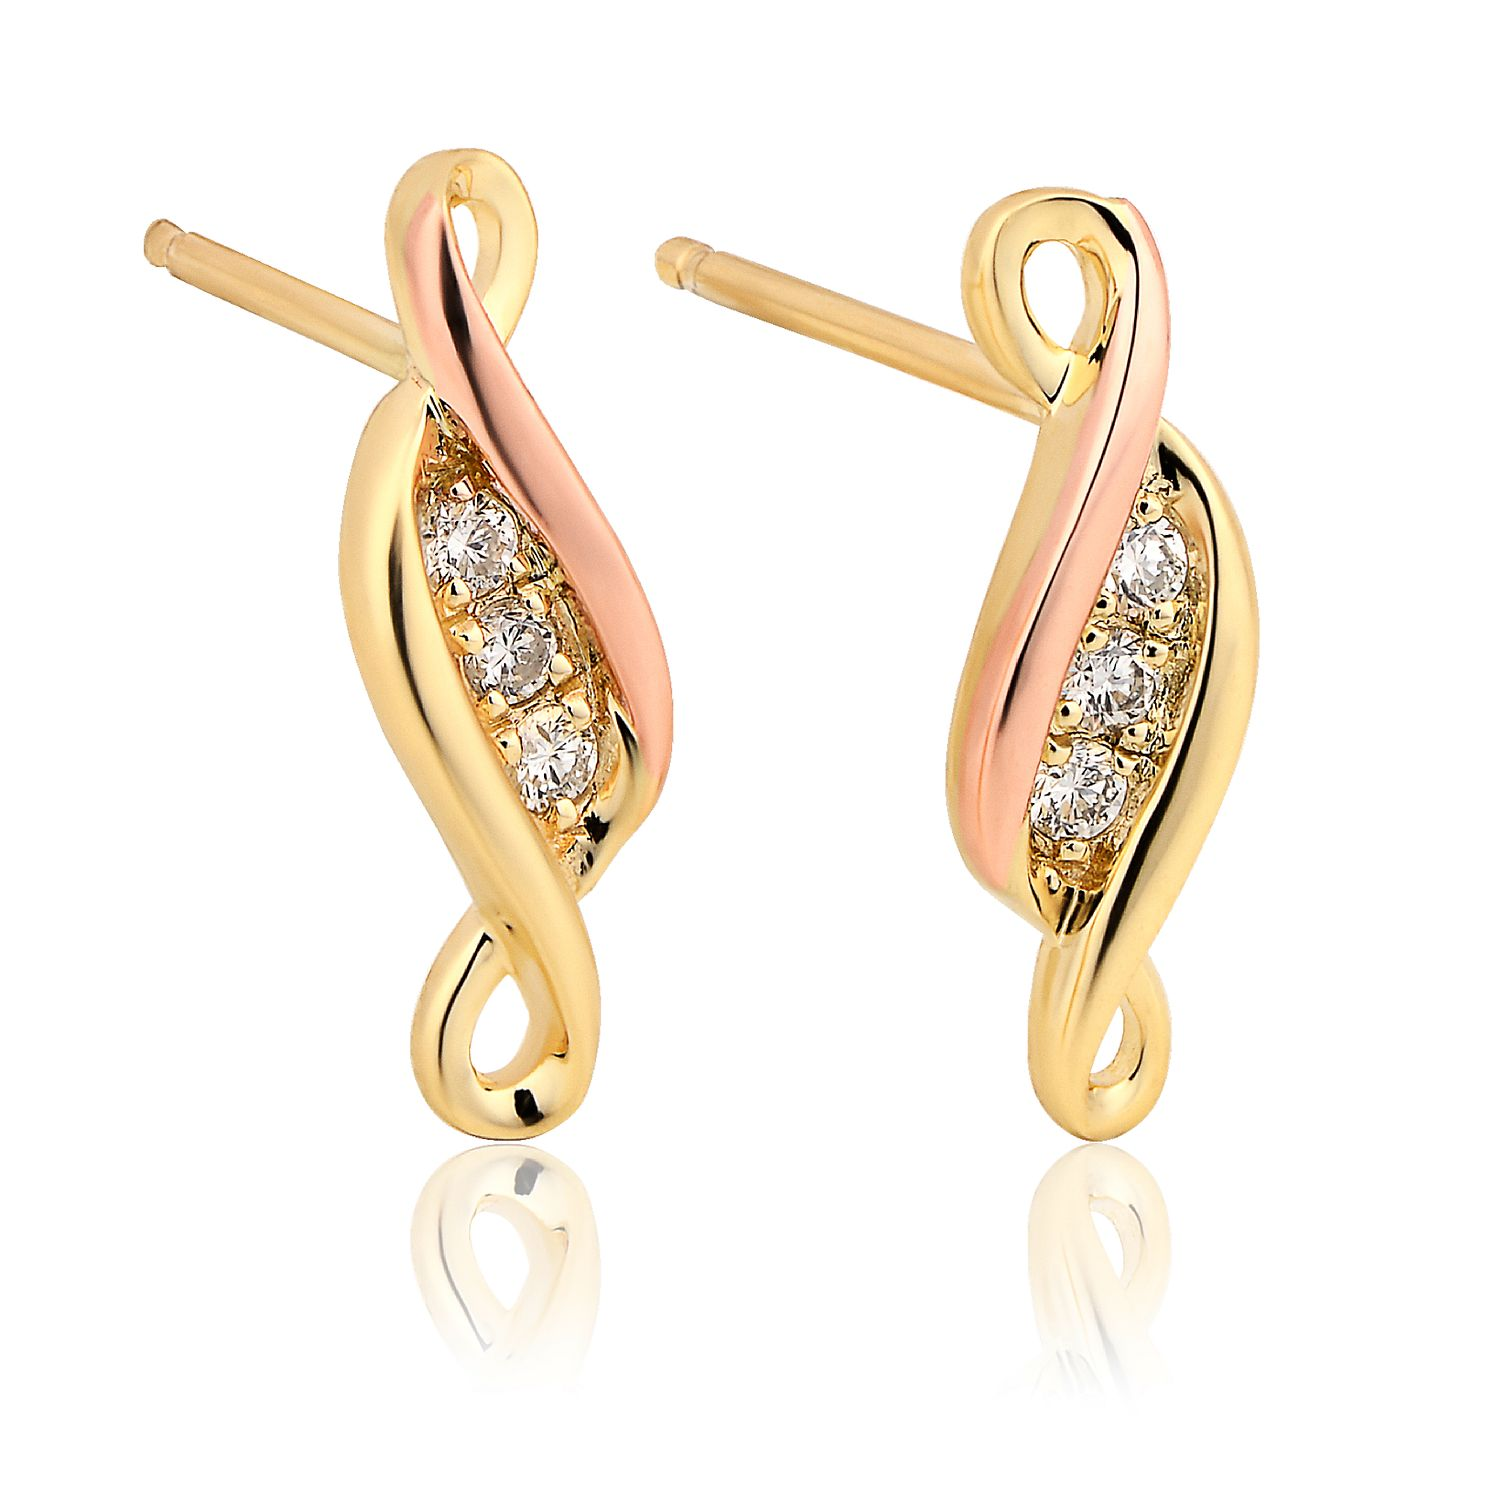 Clogau 9ct Gold Past Present Future Diamond Stud Earrings - Product number 8423121